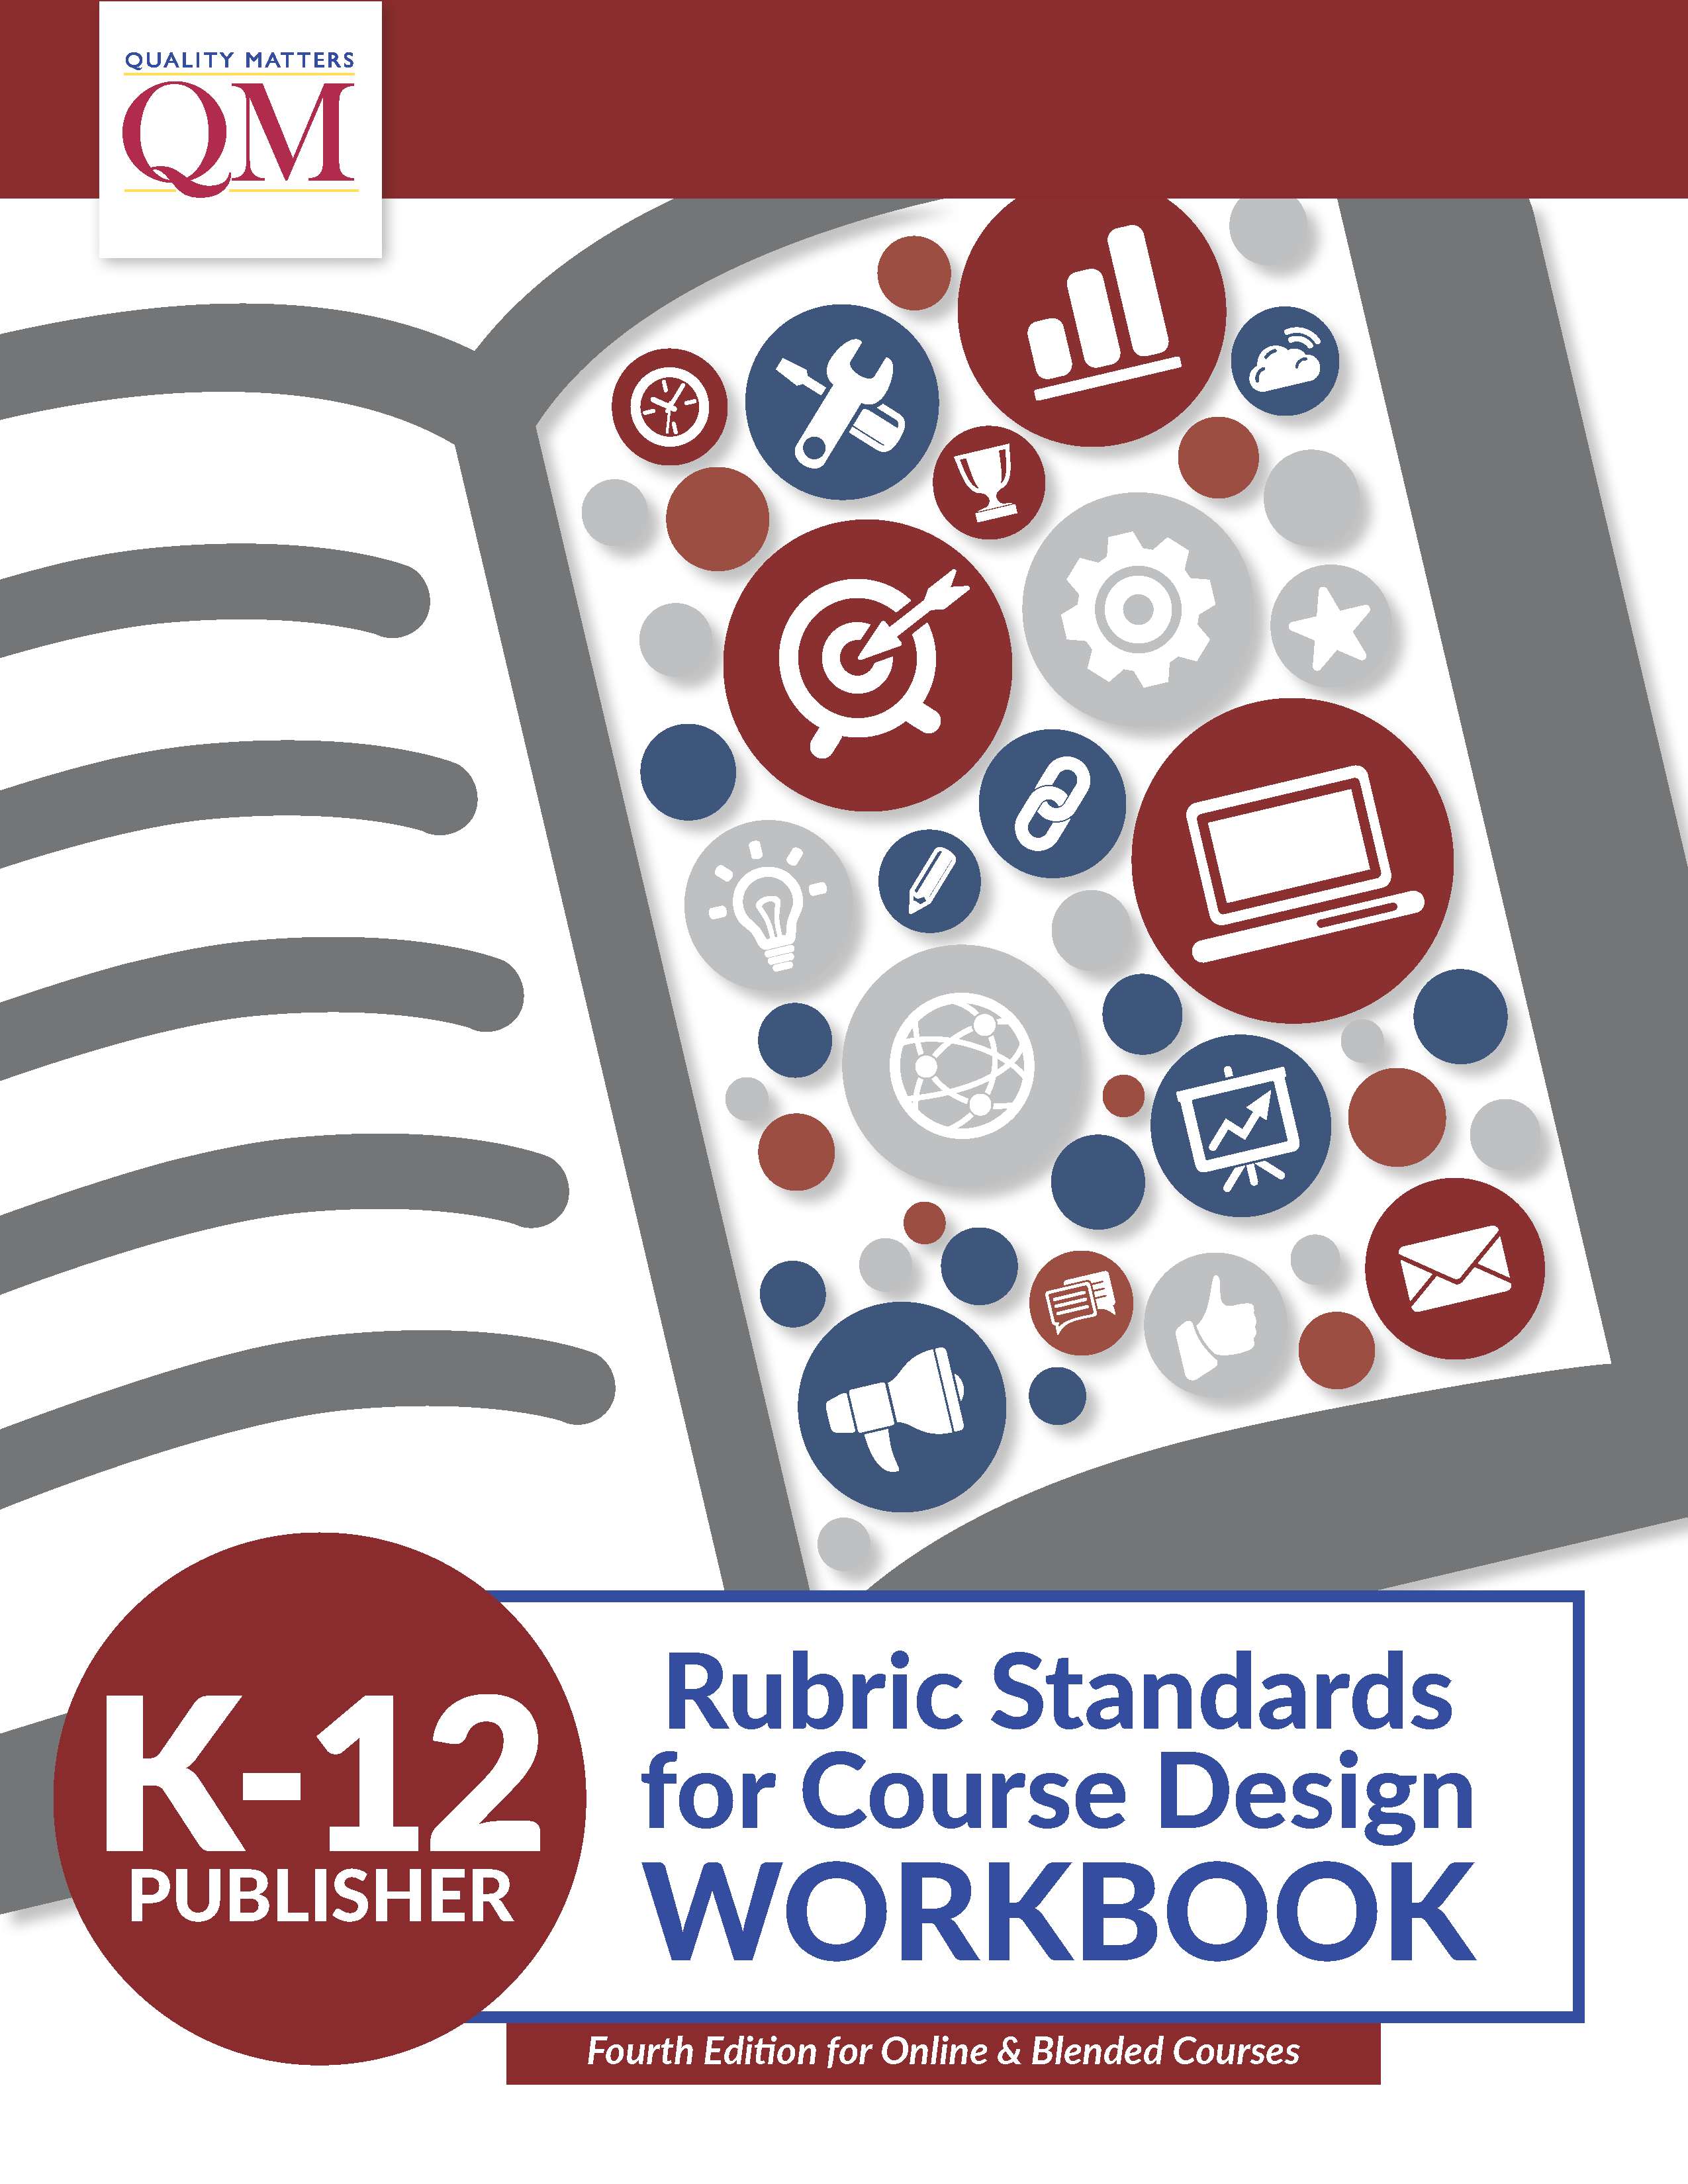 K-12-Publisher-Rubric-Workbook-cover.png